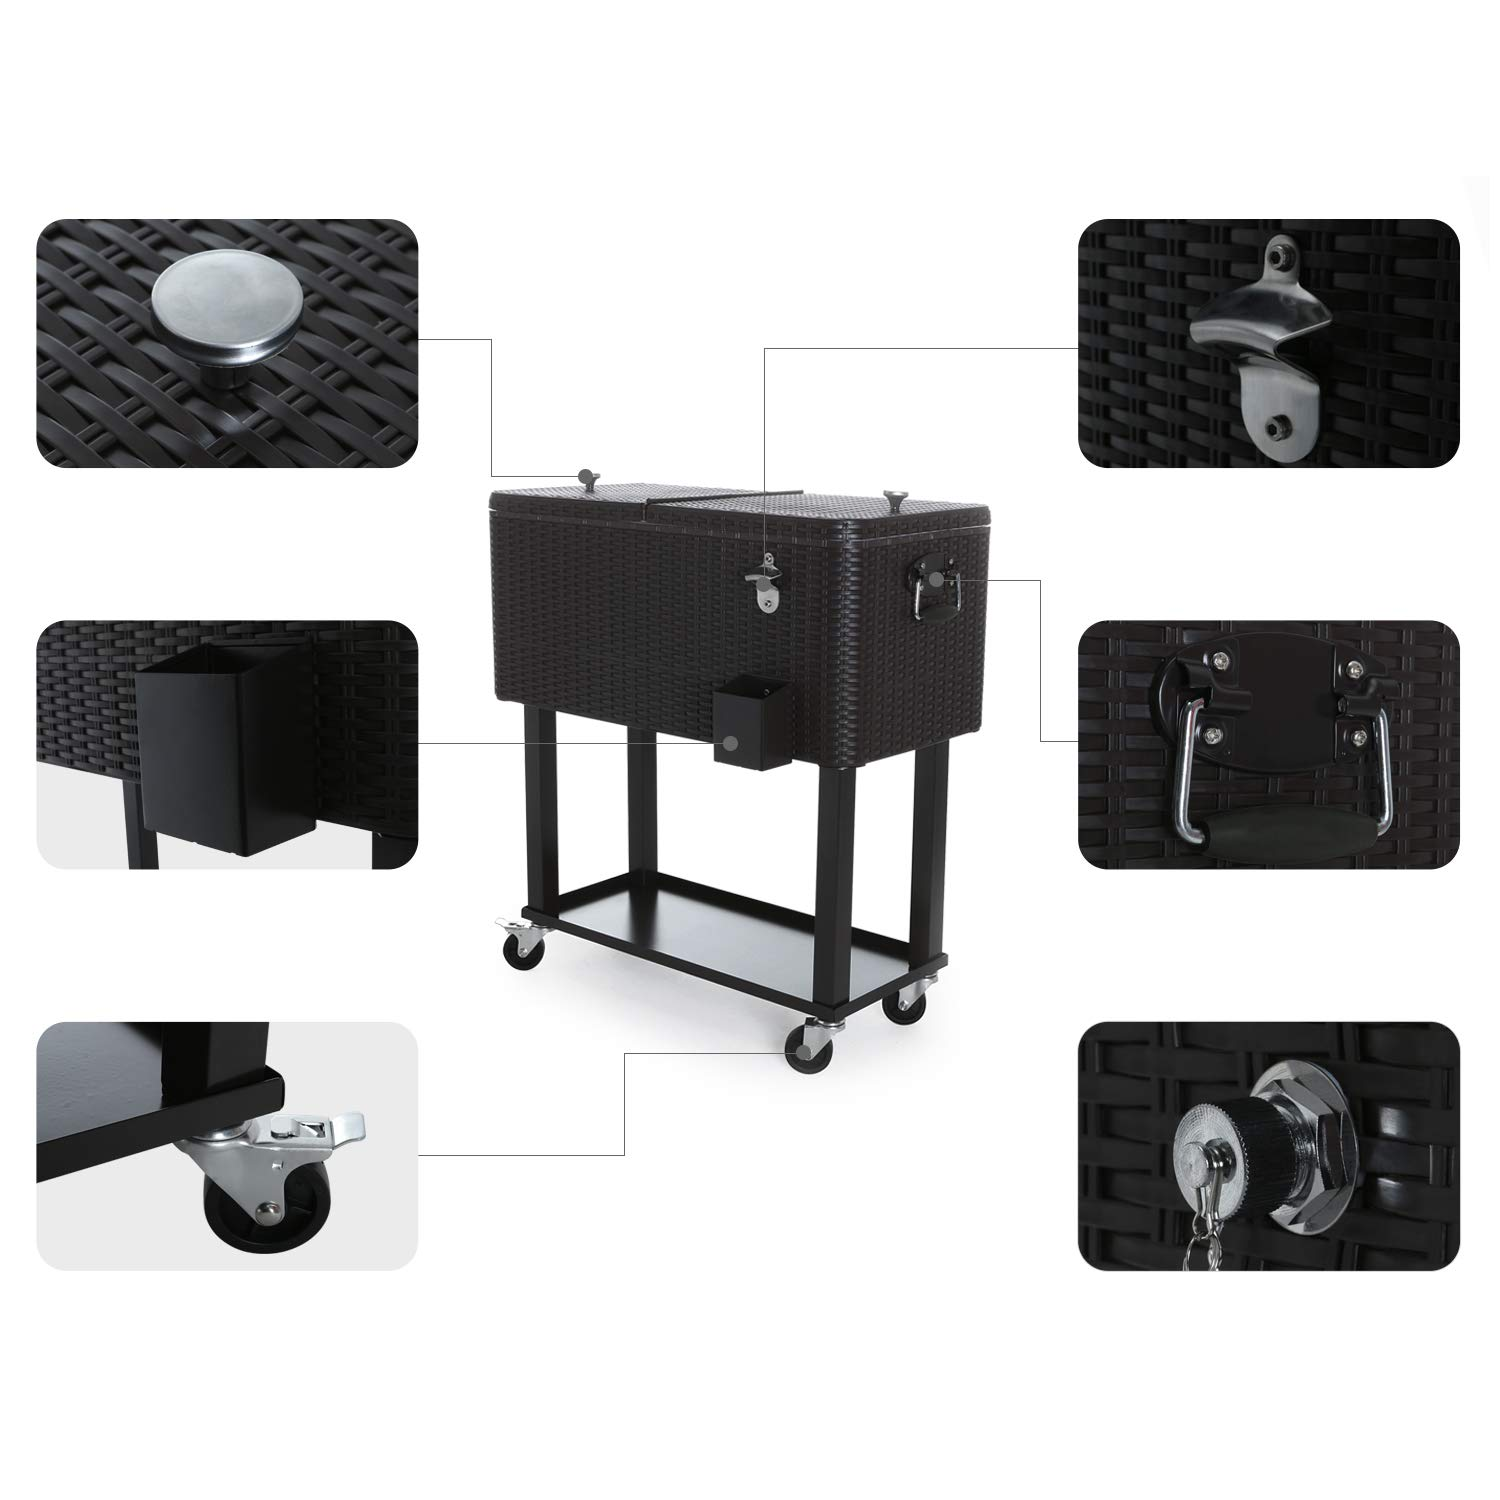 CAIDE-STORE with a Free Cover 80 Quart Outdoor Portable Cooler Patio Ice Chest Cooler Cart on Wheel by CAIDE-STORE (Image #7)